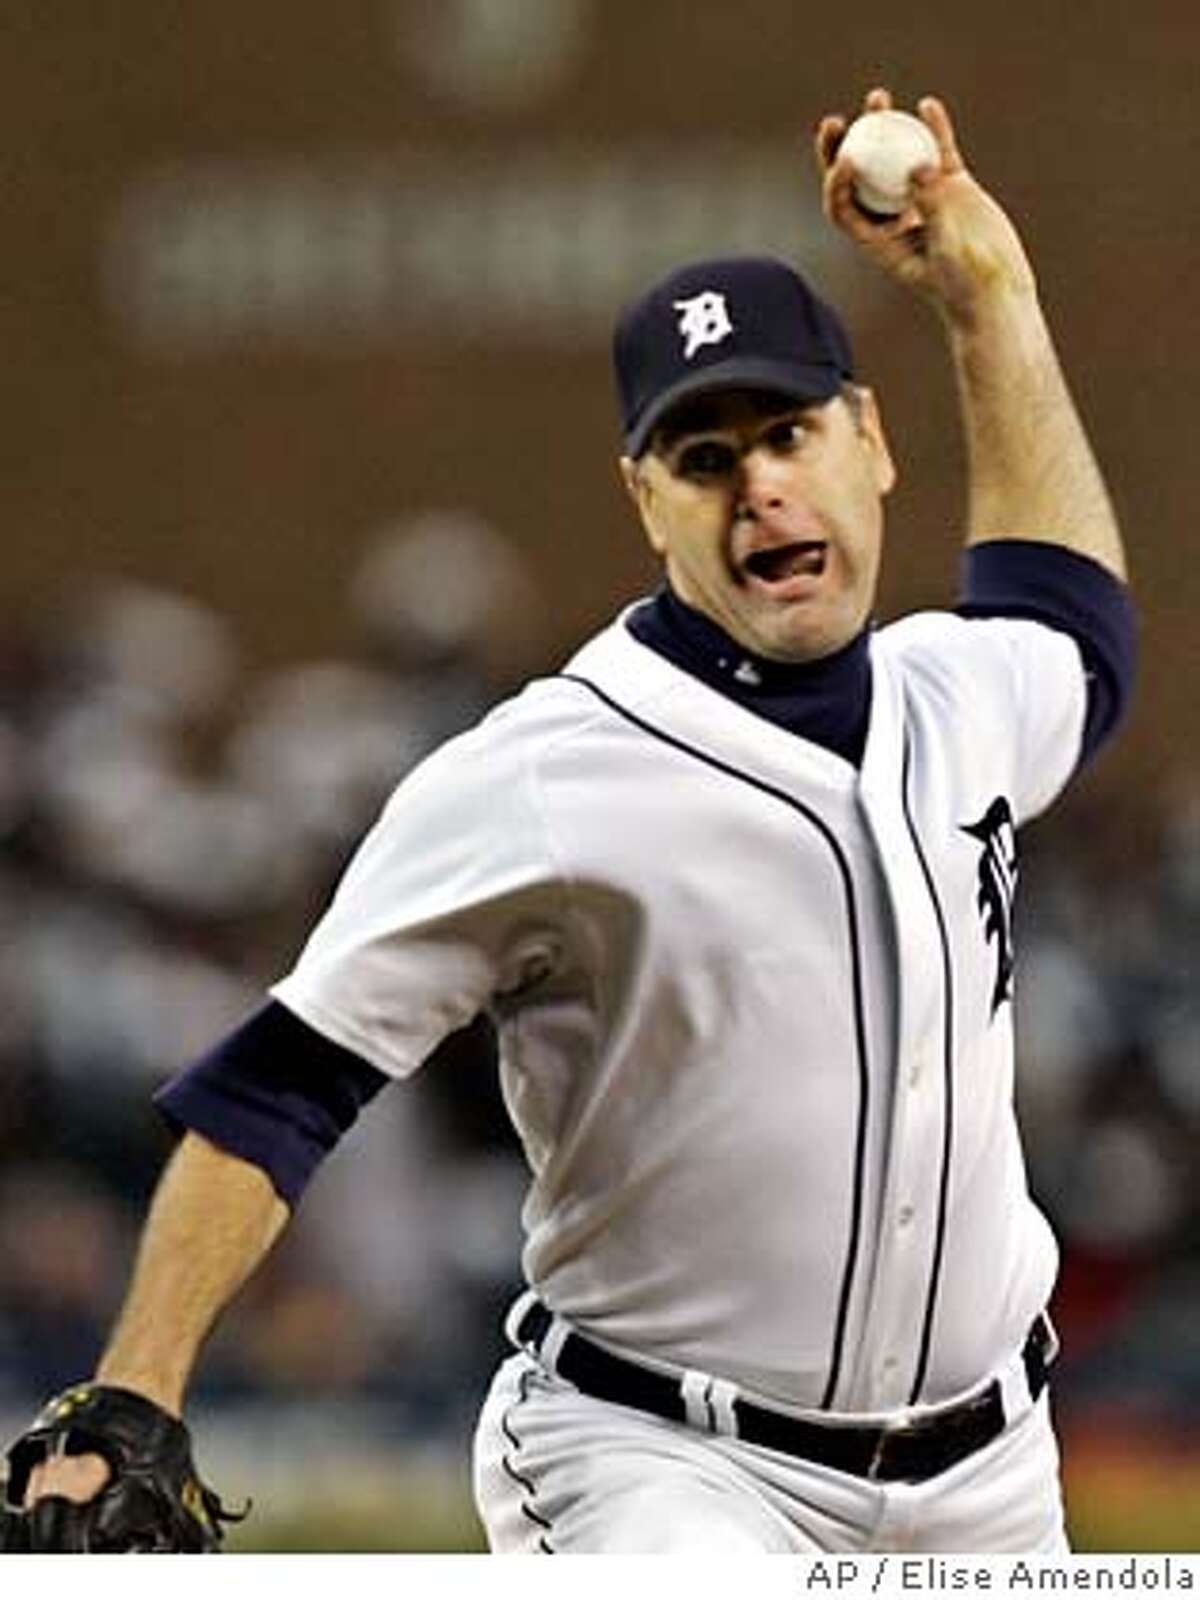 Detroit Tigers starting pitcher Kenny Rogers throws during the eighth inning in Game 3 of the American League Championship Series against the Oakland Athletics in Detroit, Friday, Oct. 13, 2006. Detroit defeated Oakland 3-0 and leads the best of seven series 3-0 games. (AP Photo/Elise Amendola)